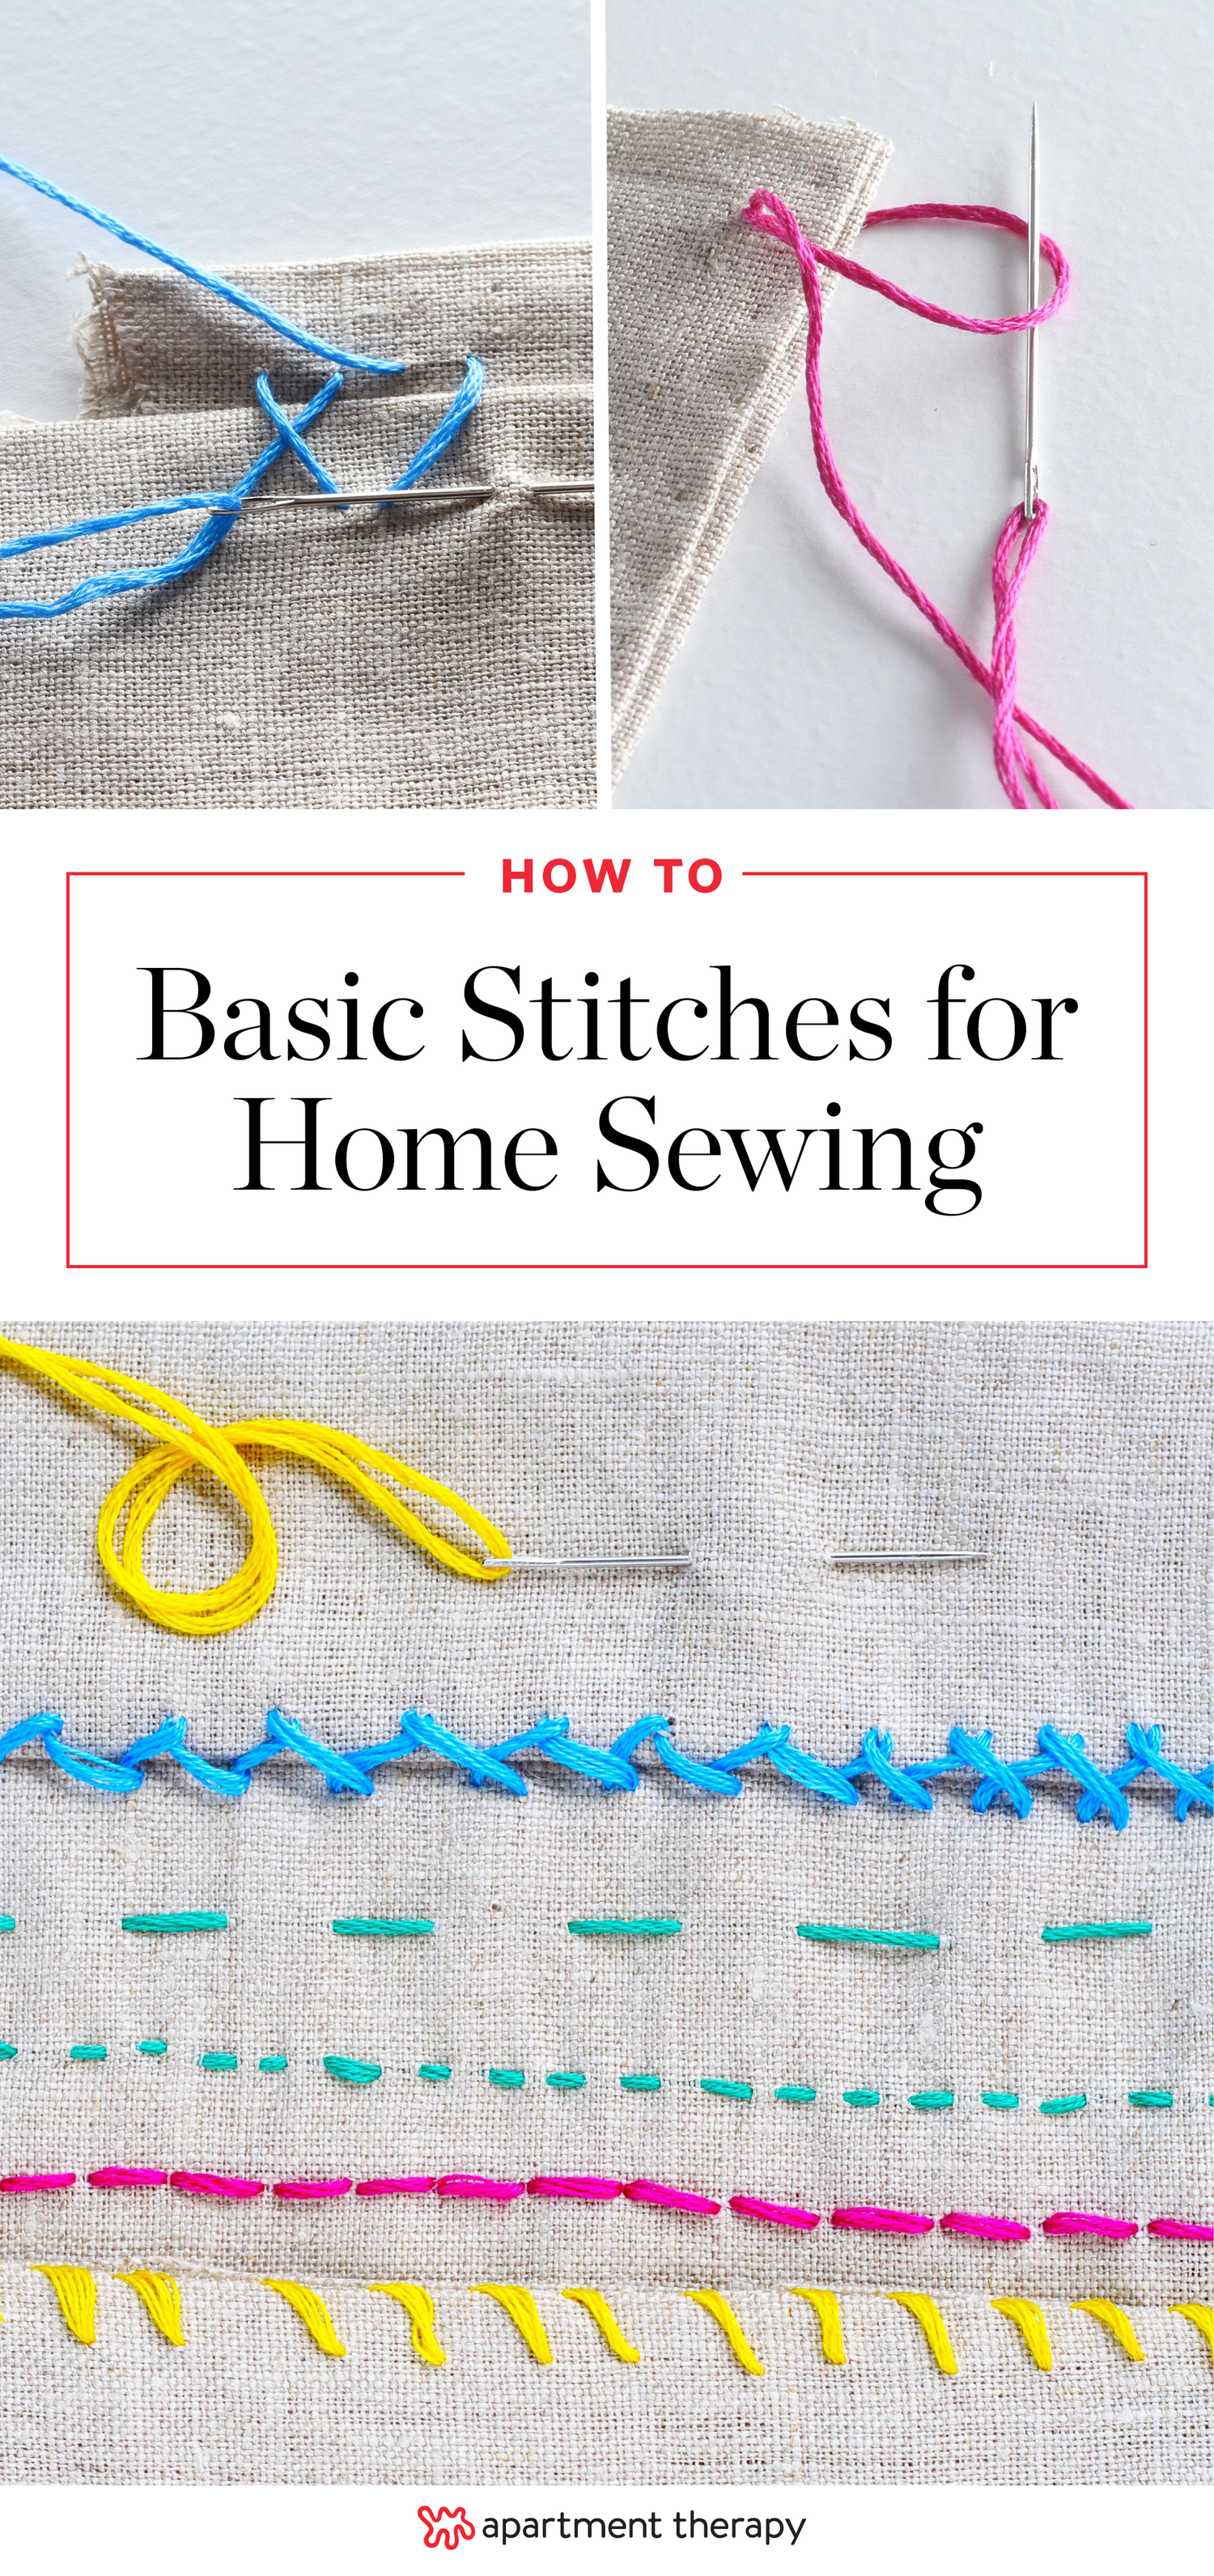 6 Helpful Stitches for Home Sewing Projects | Pinterest | Apartment ...